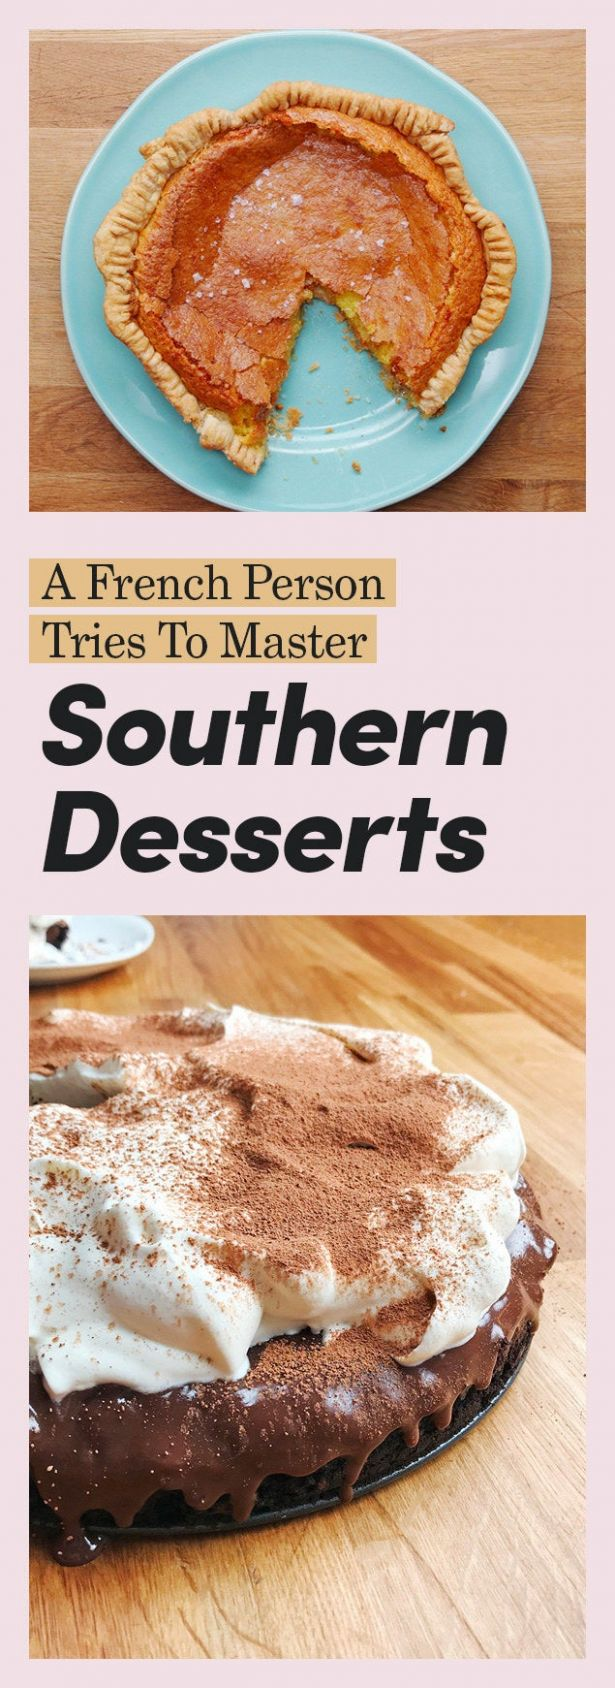 I, A French Person, Made Classic Southern Desserts (And Have Some ..